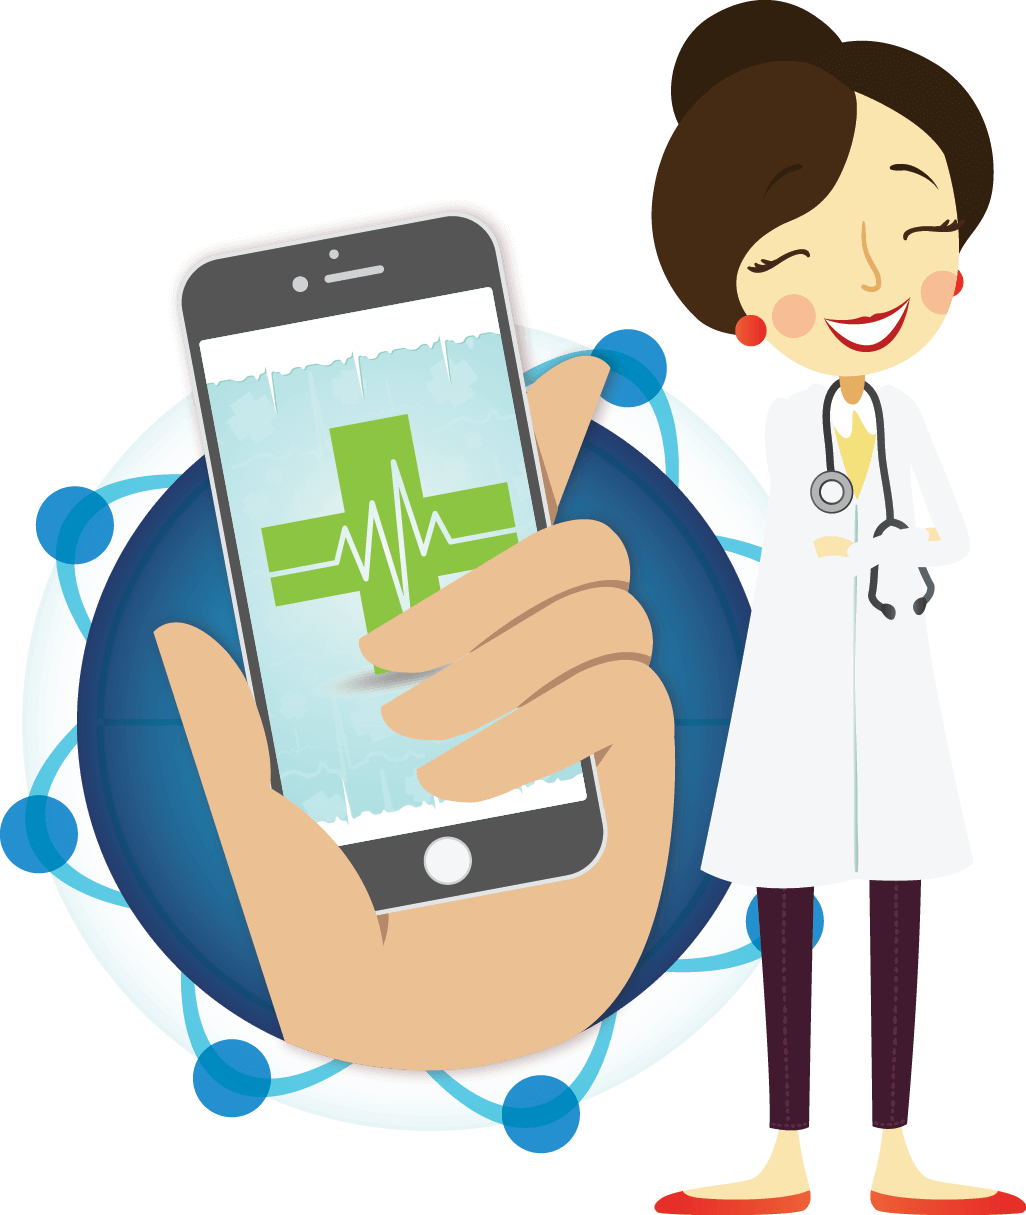 Professional clipart healthcare industry. Medical app development company